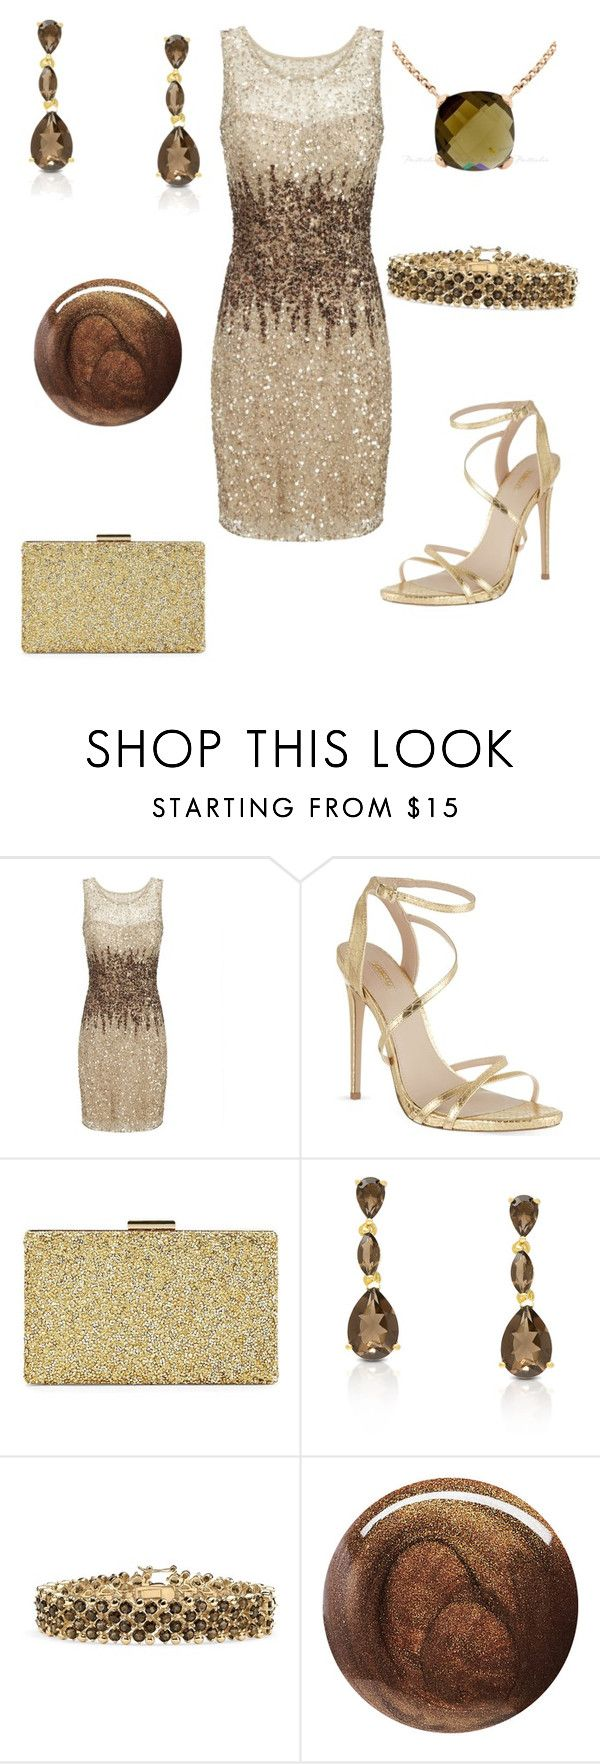 """Cocktail Hour Outfit 64 - Brandi"" by office-girl ❤ liked on Polyvore featuring Adrianna Papell, Carvela, Sasha, Dolce Giavonna, Palm Beach Jewelry, Butter London, women's clothing, women, female and woman"